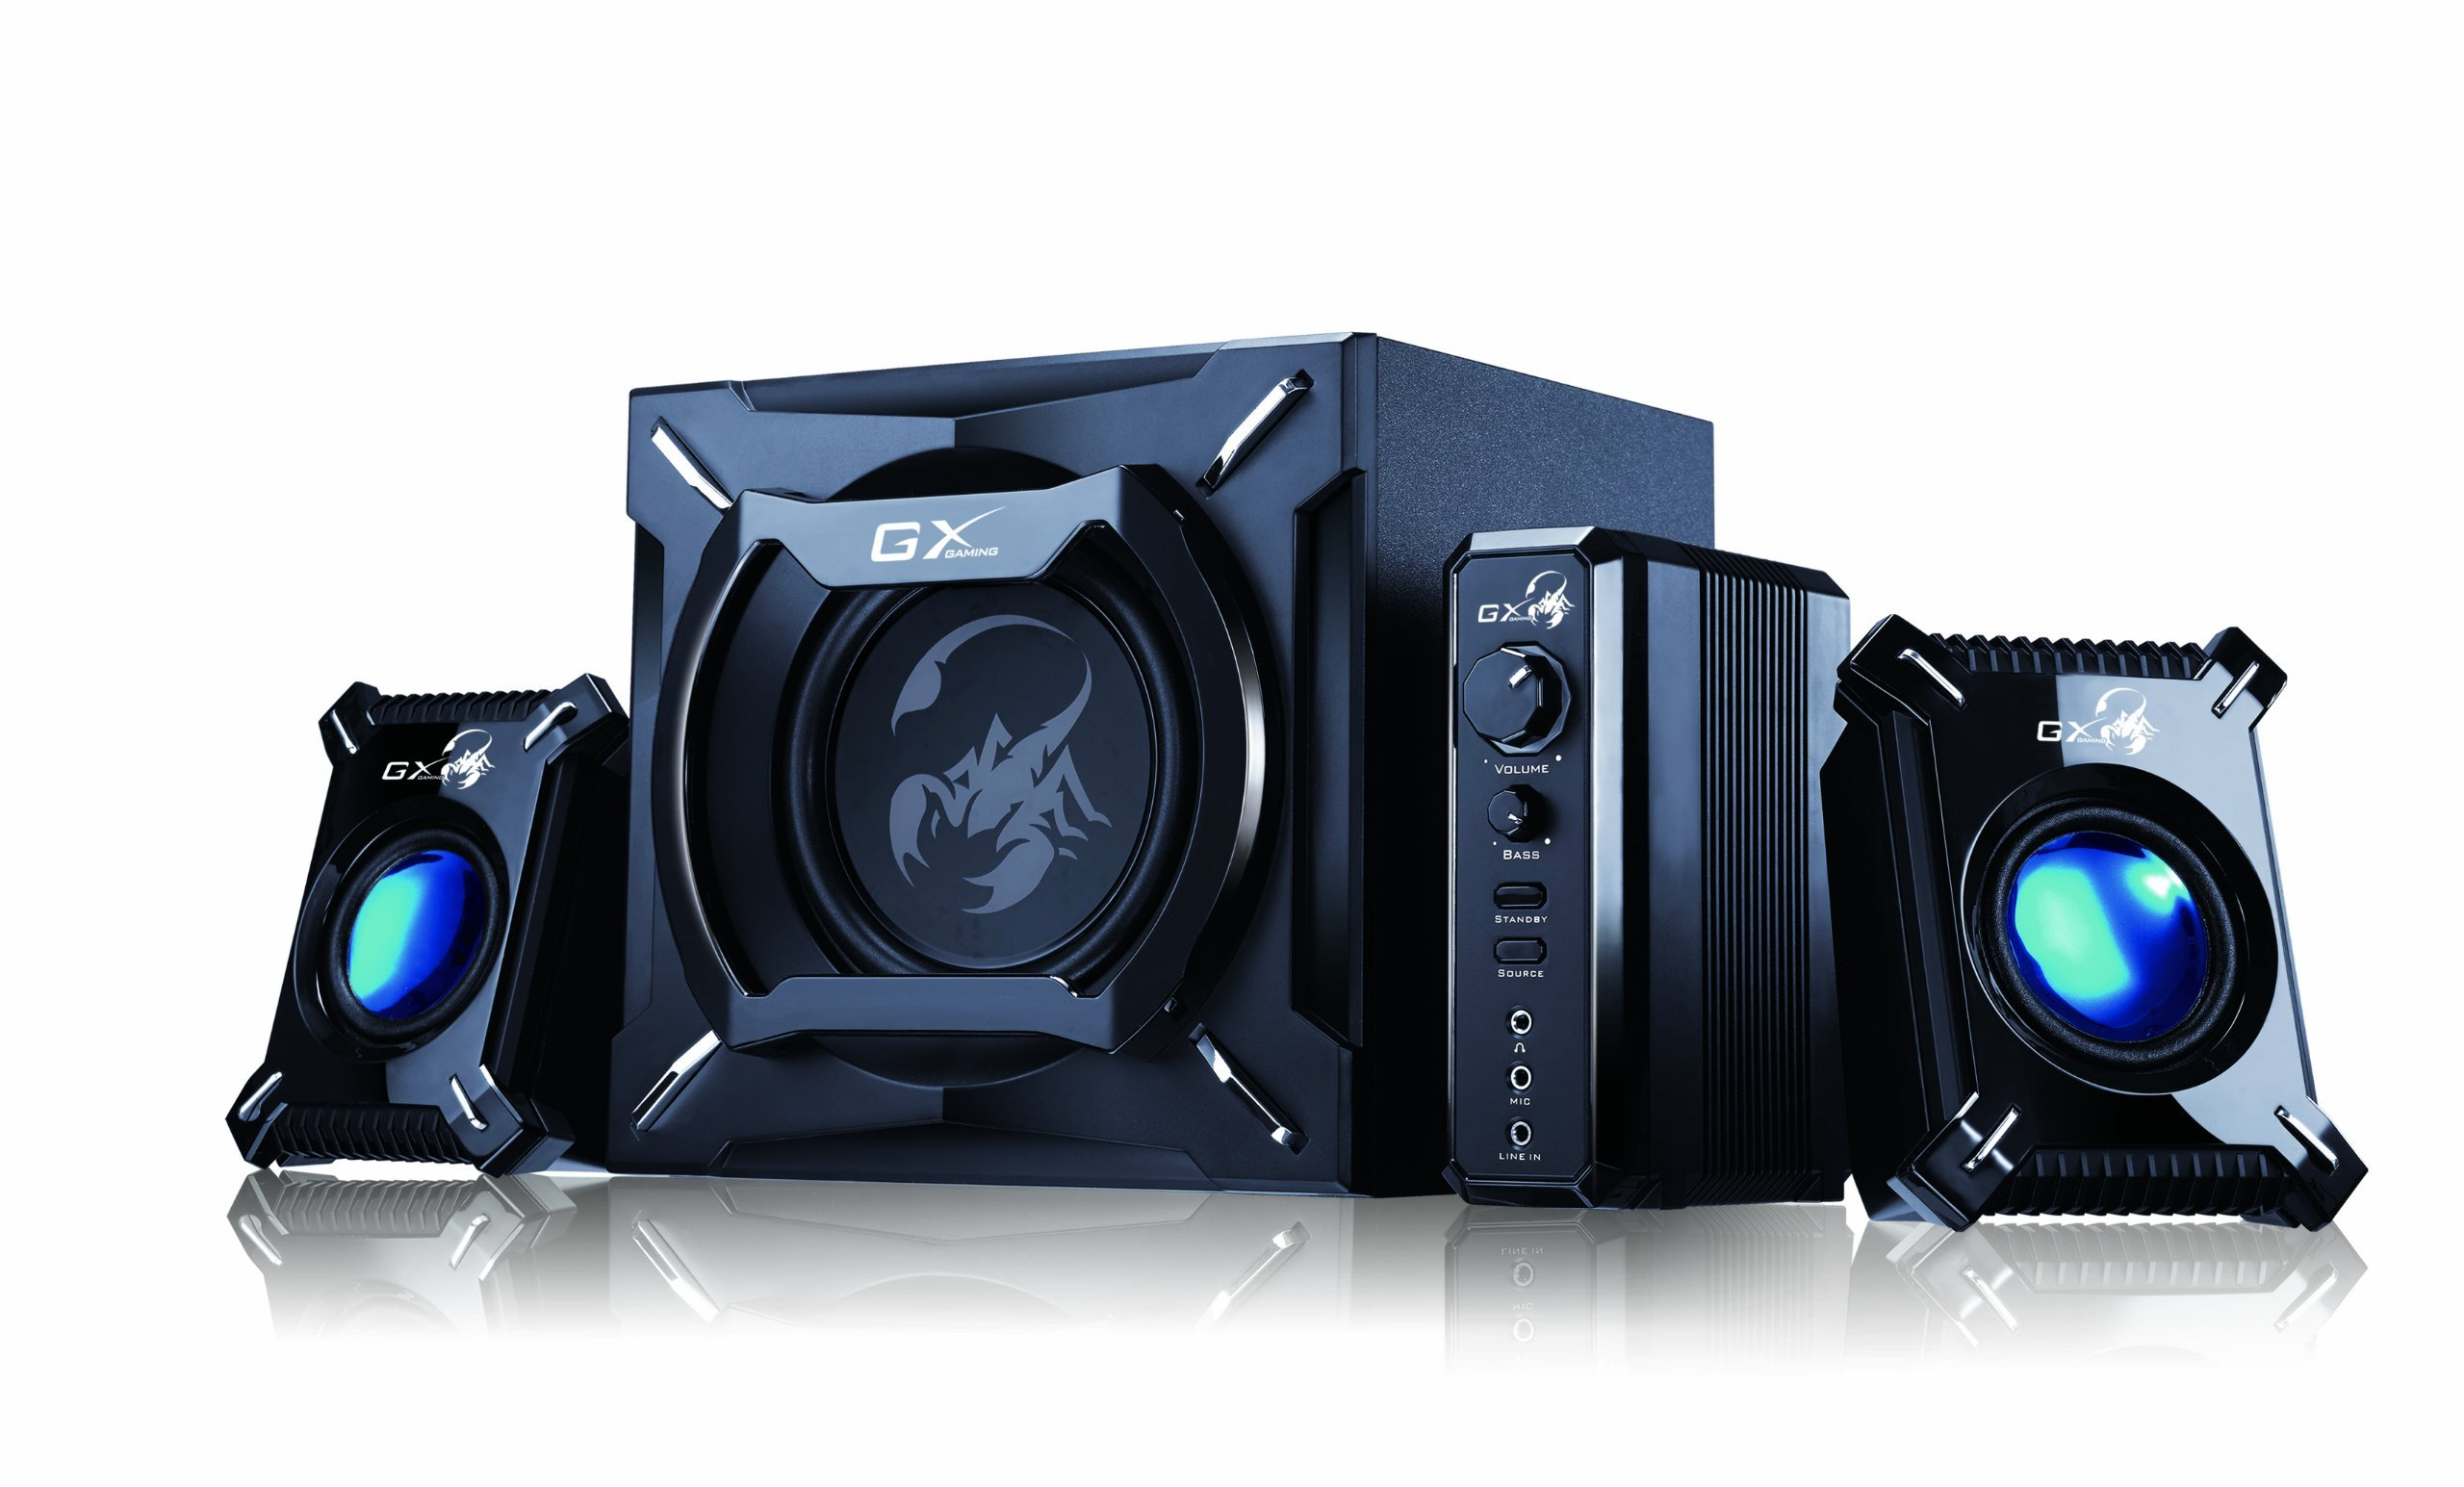 Genius SW-G2.1 2000 2.1 Channel 45 Watts RMS Gaming Woofer Speaker System for Android, Apple Devices, Tablets, Laptops, PC